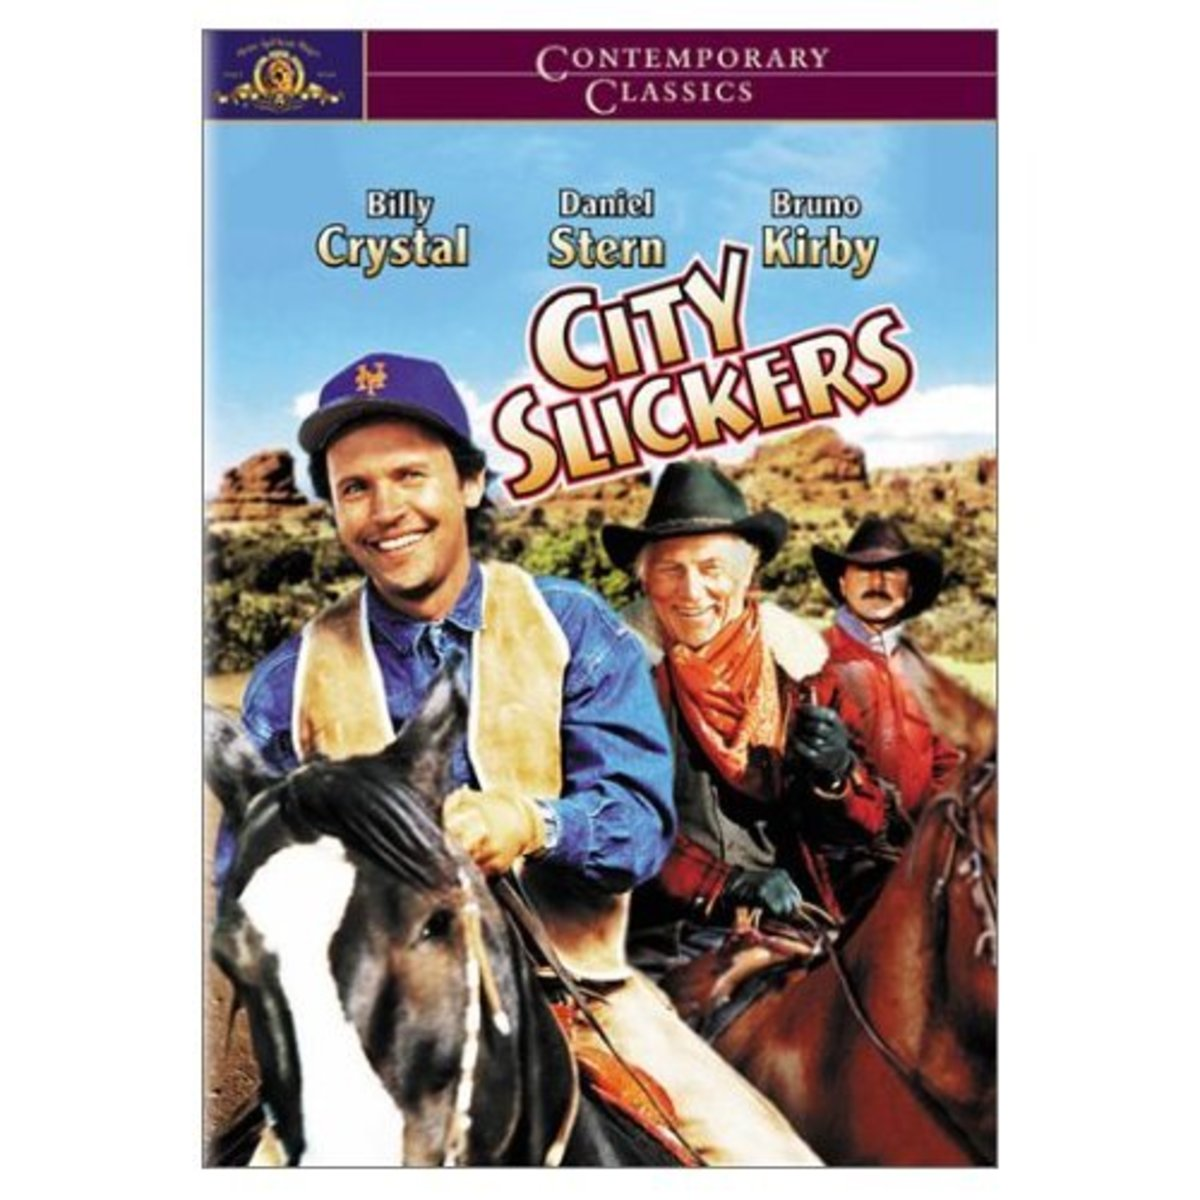 City Slickers starring Billy Crystal is about a bunch of dudes.